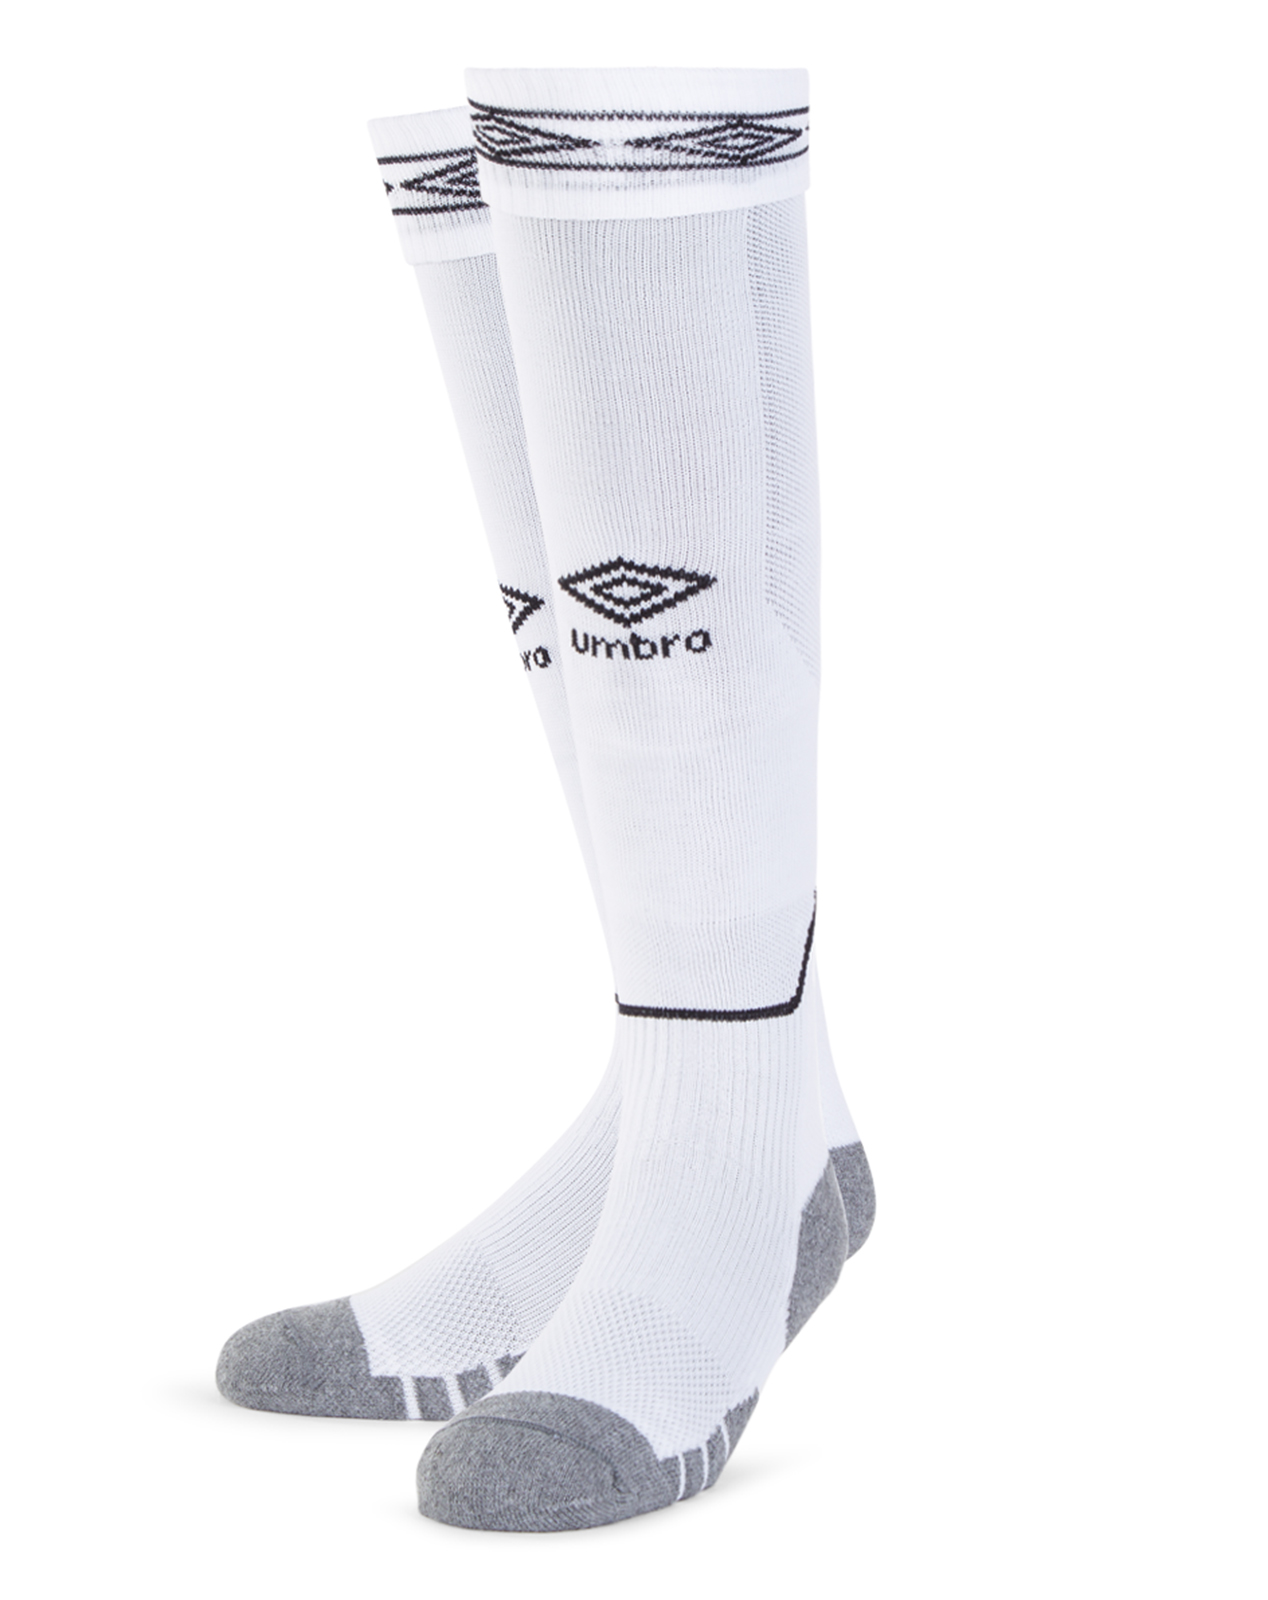 Umbro Diamond Top Socks in white with black Diamond turnover design